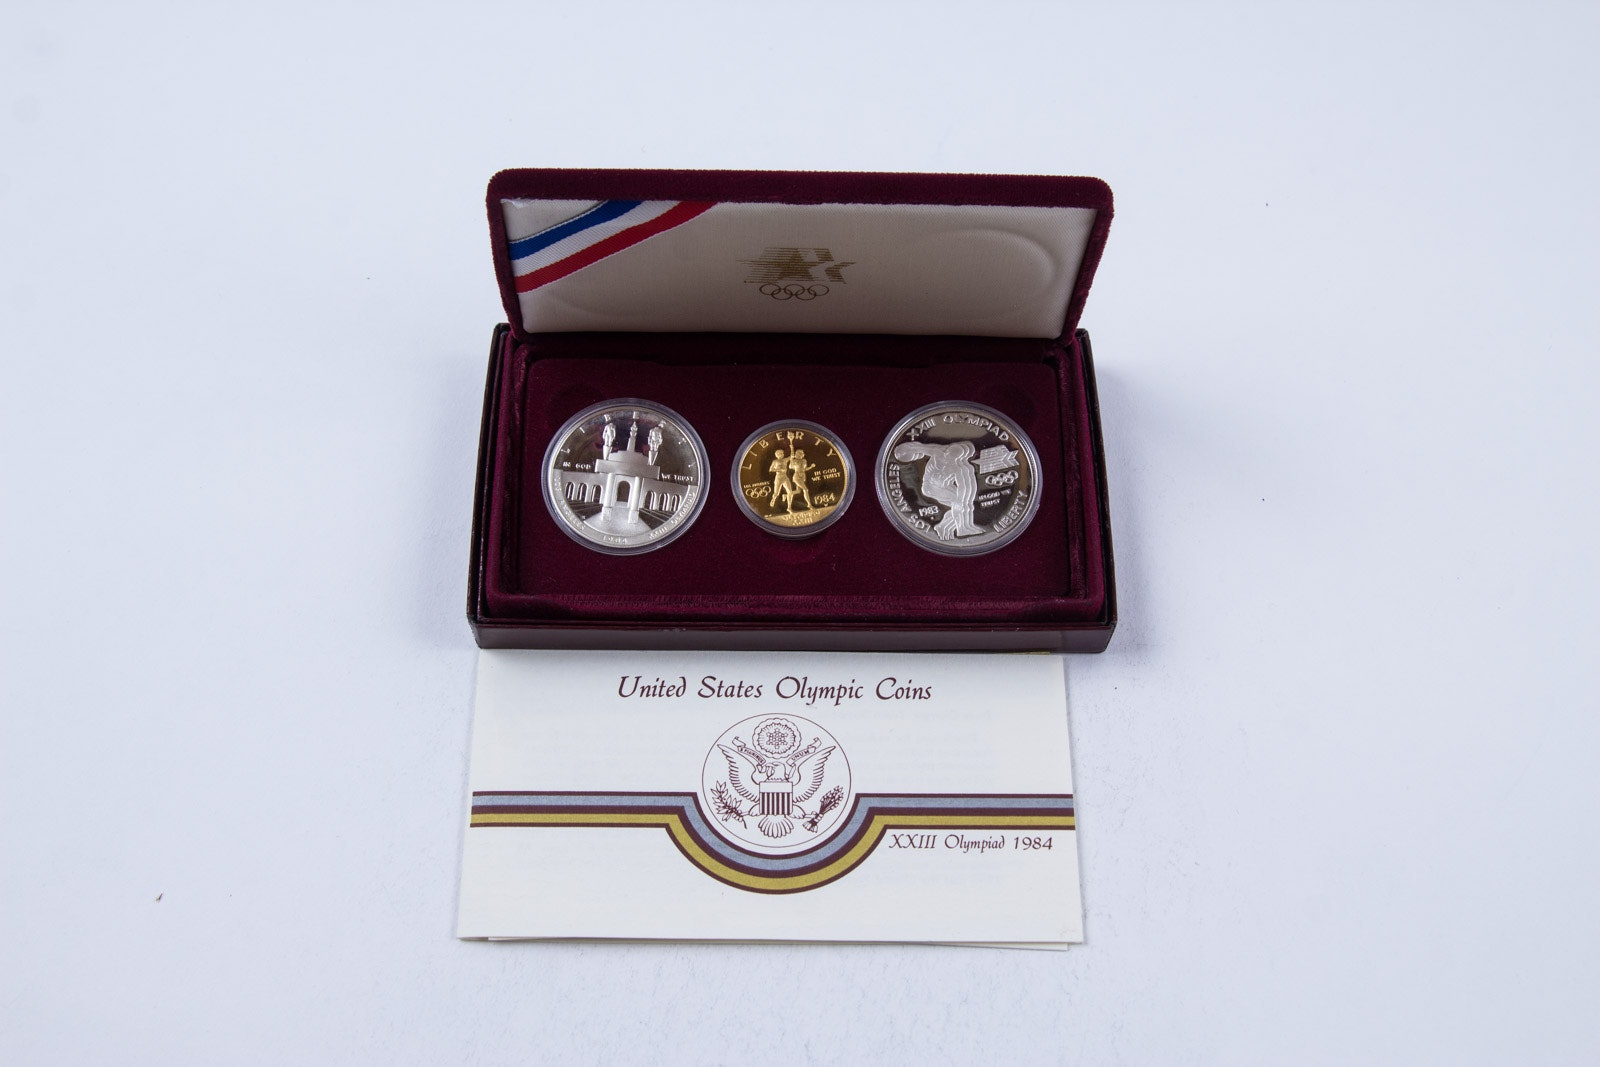 1984 Olympics Ten Dollar Gold Coin, with Related Silver Coinage